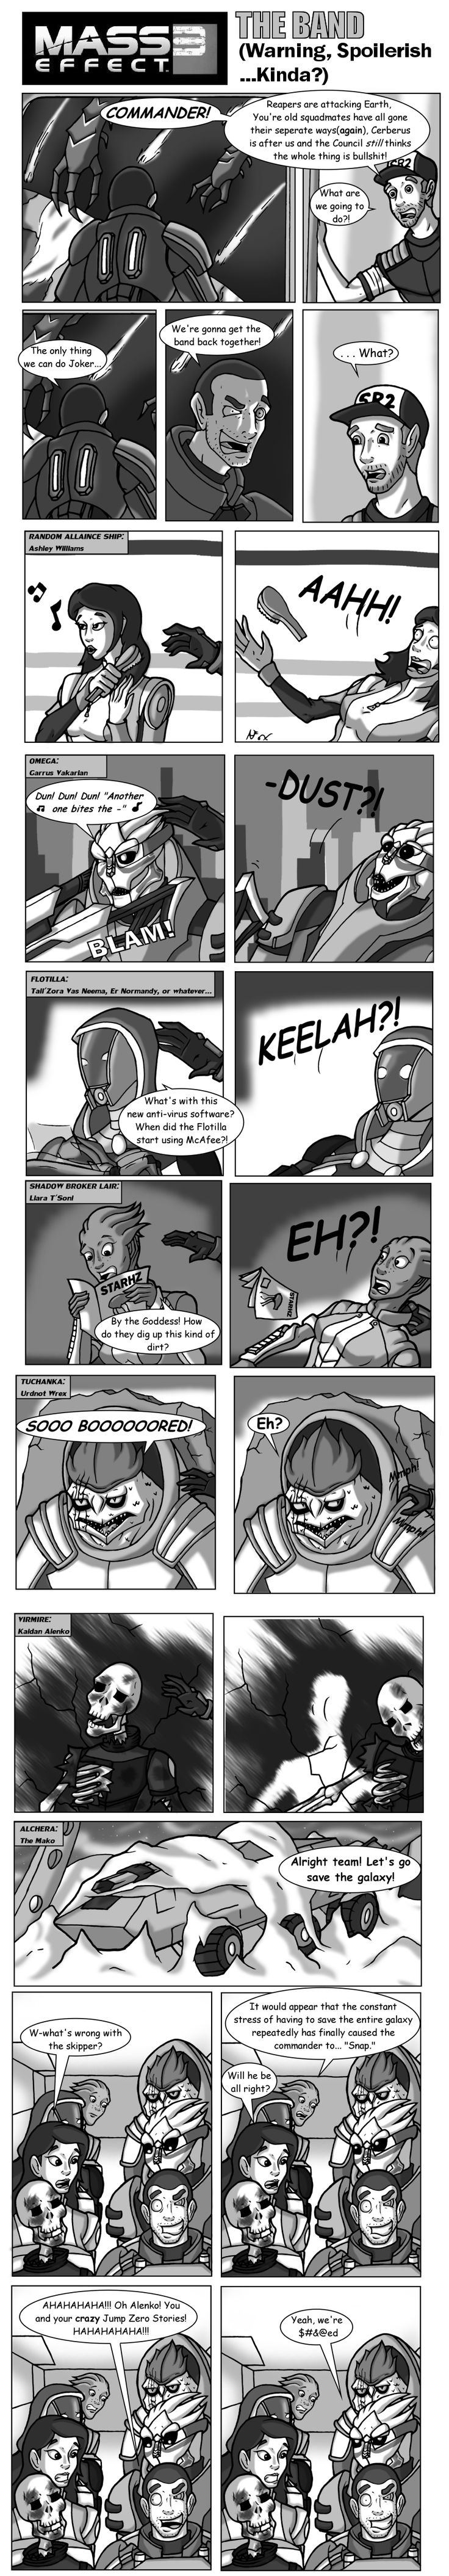 Mass Effect 3 The Band by HGuyver on DeviantArt